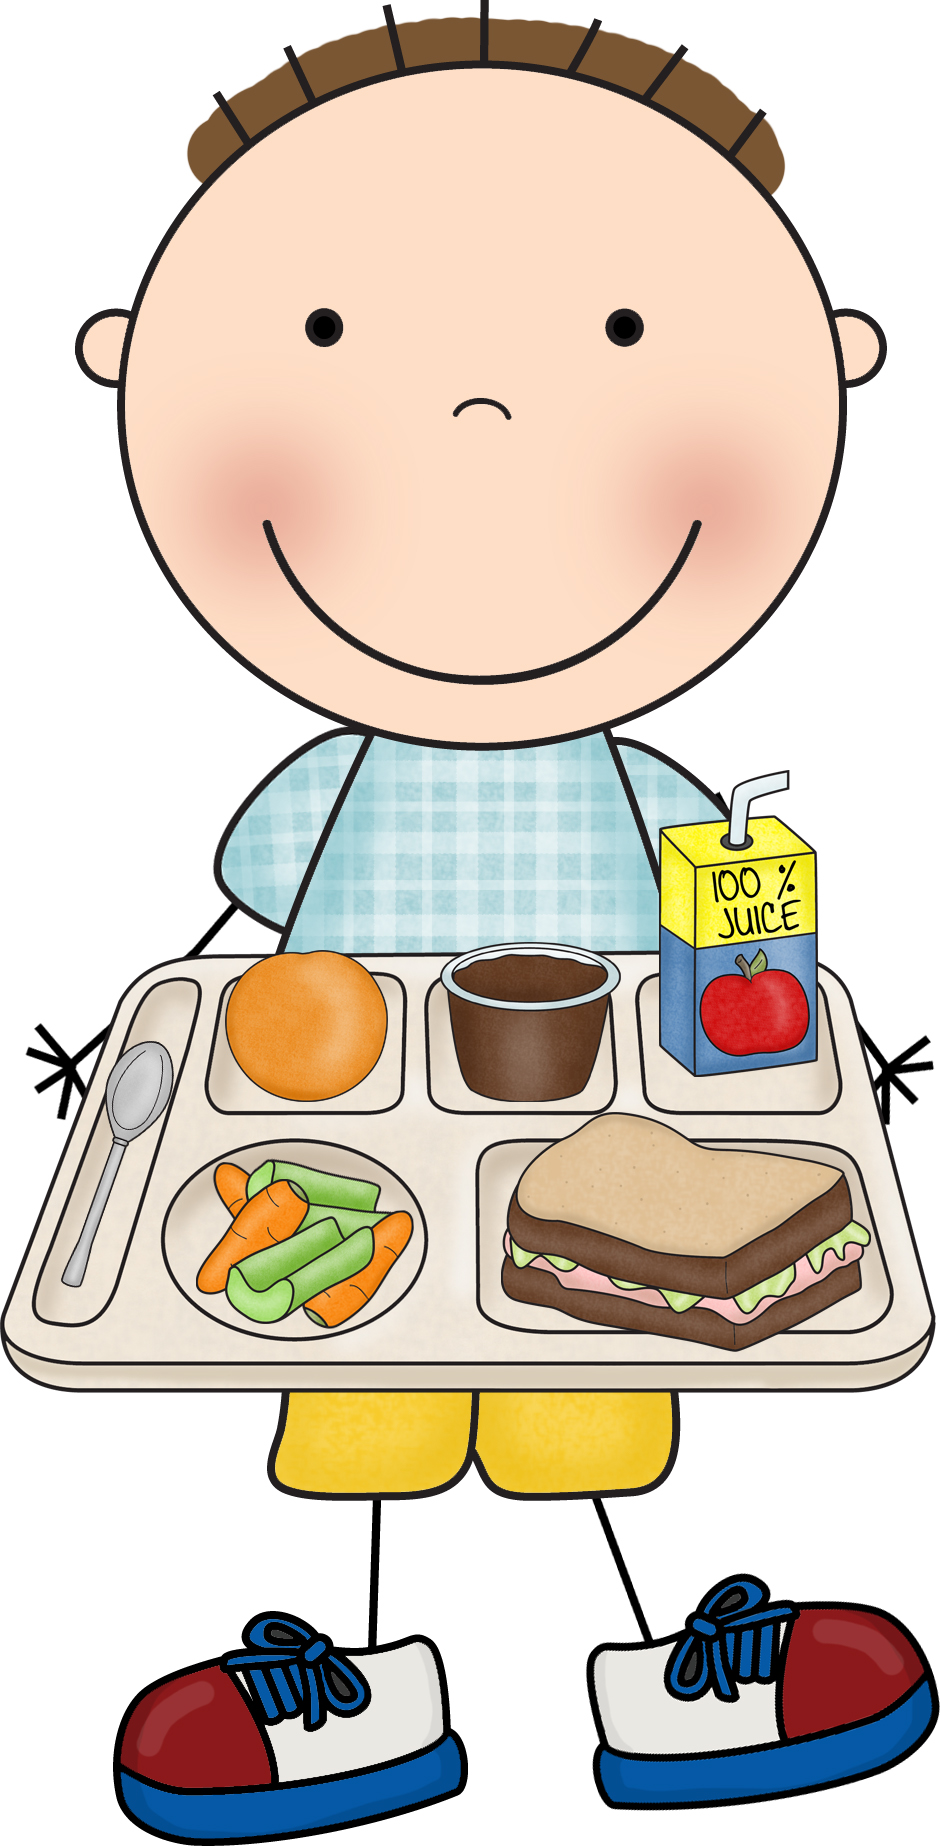 Lunch Clipart & Lunch Clip Art Images.